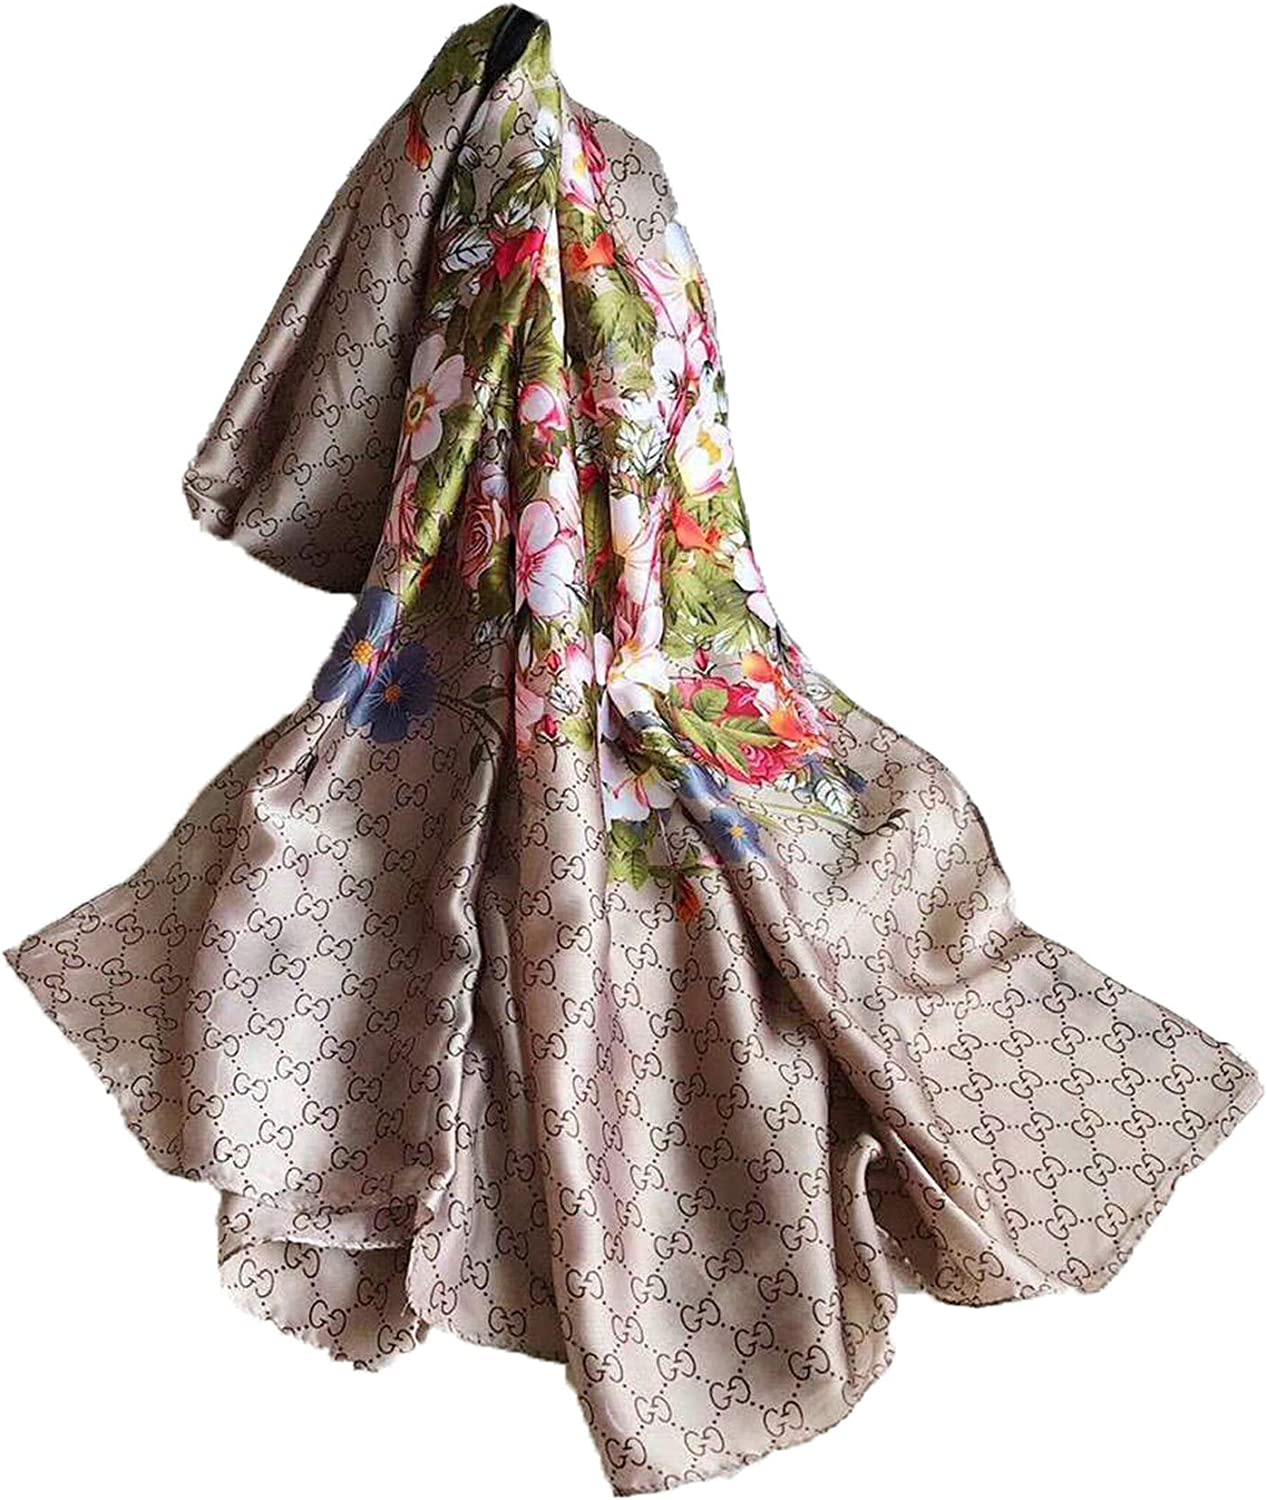 Fashion luxury silk scarves are suitable for women and men in four seasons. Luxury gifts are comfortable to wear anywhere (Z2)